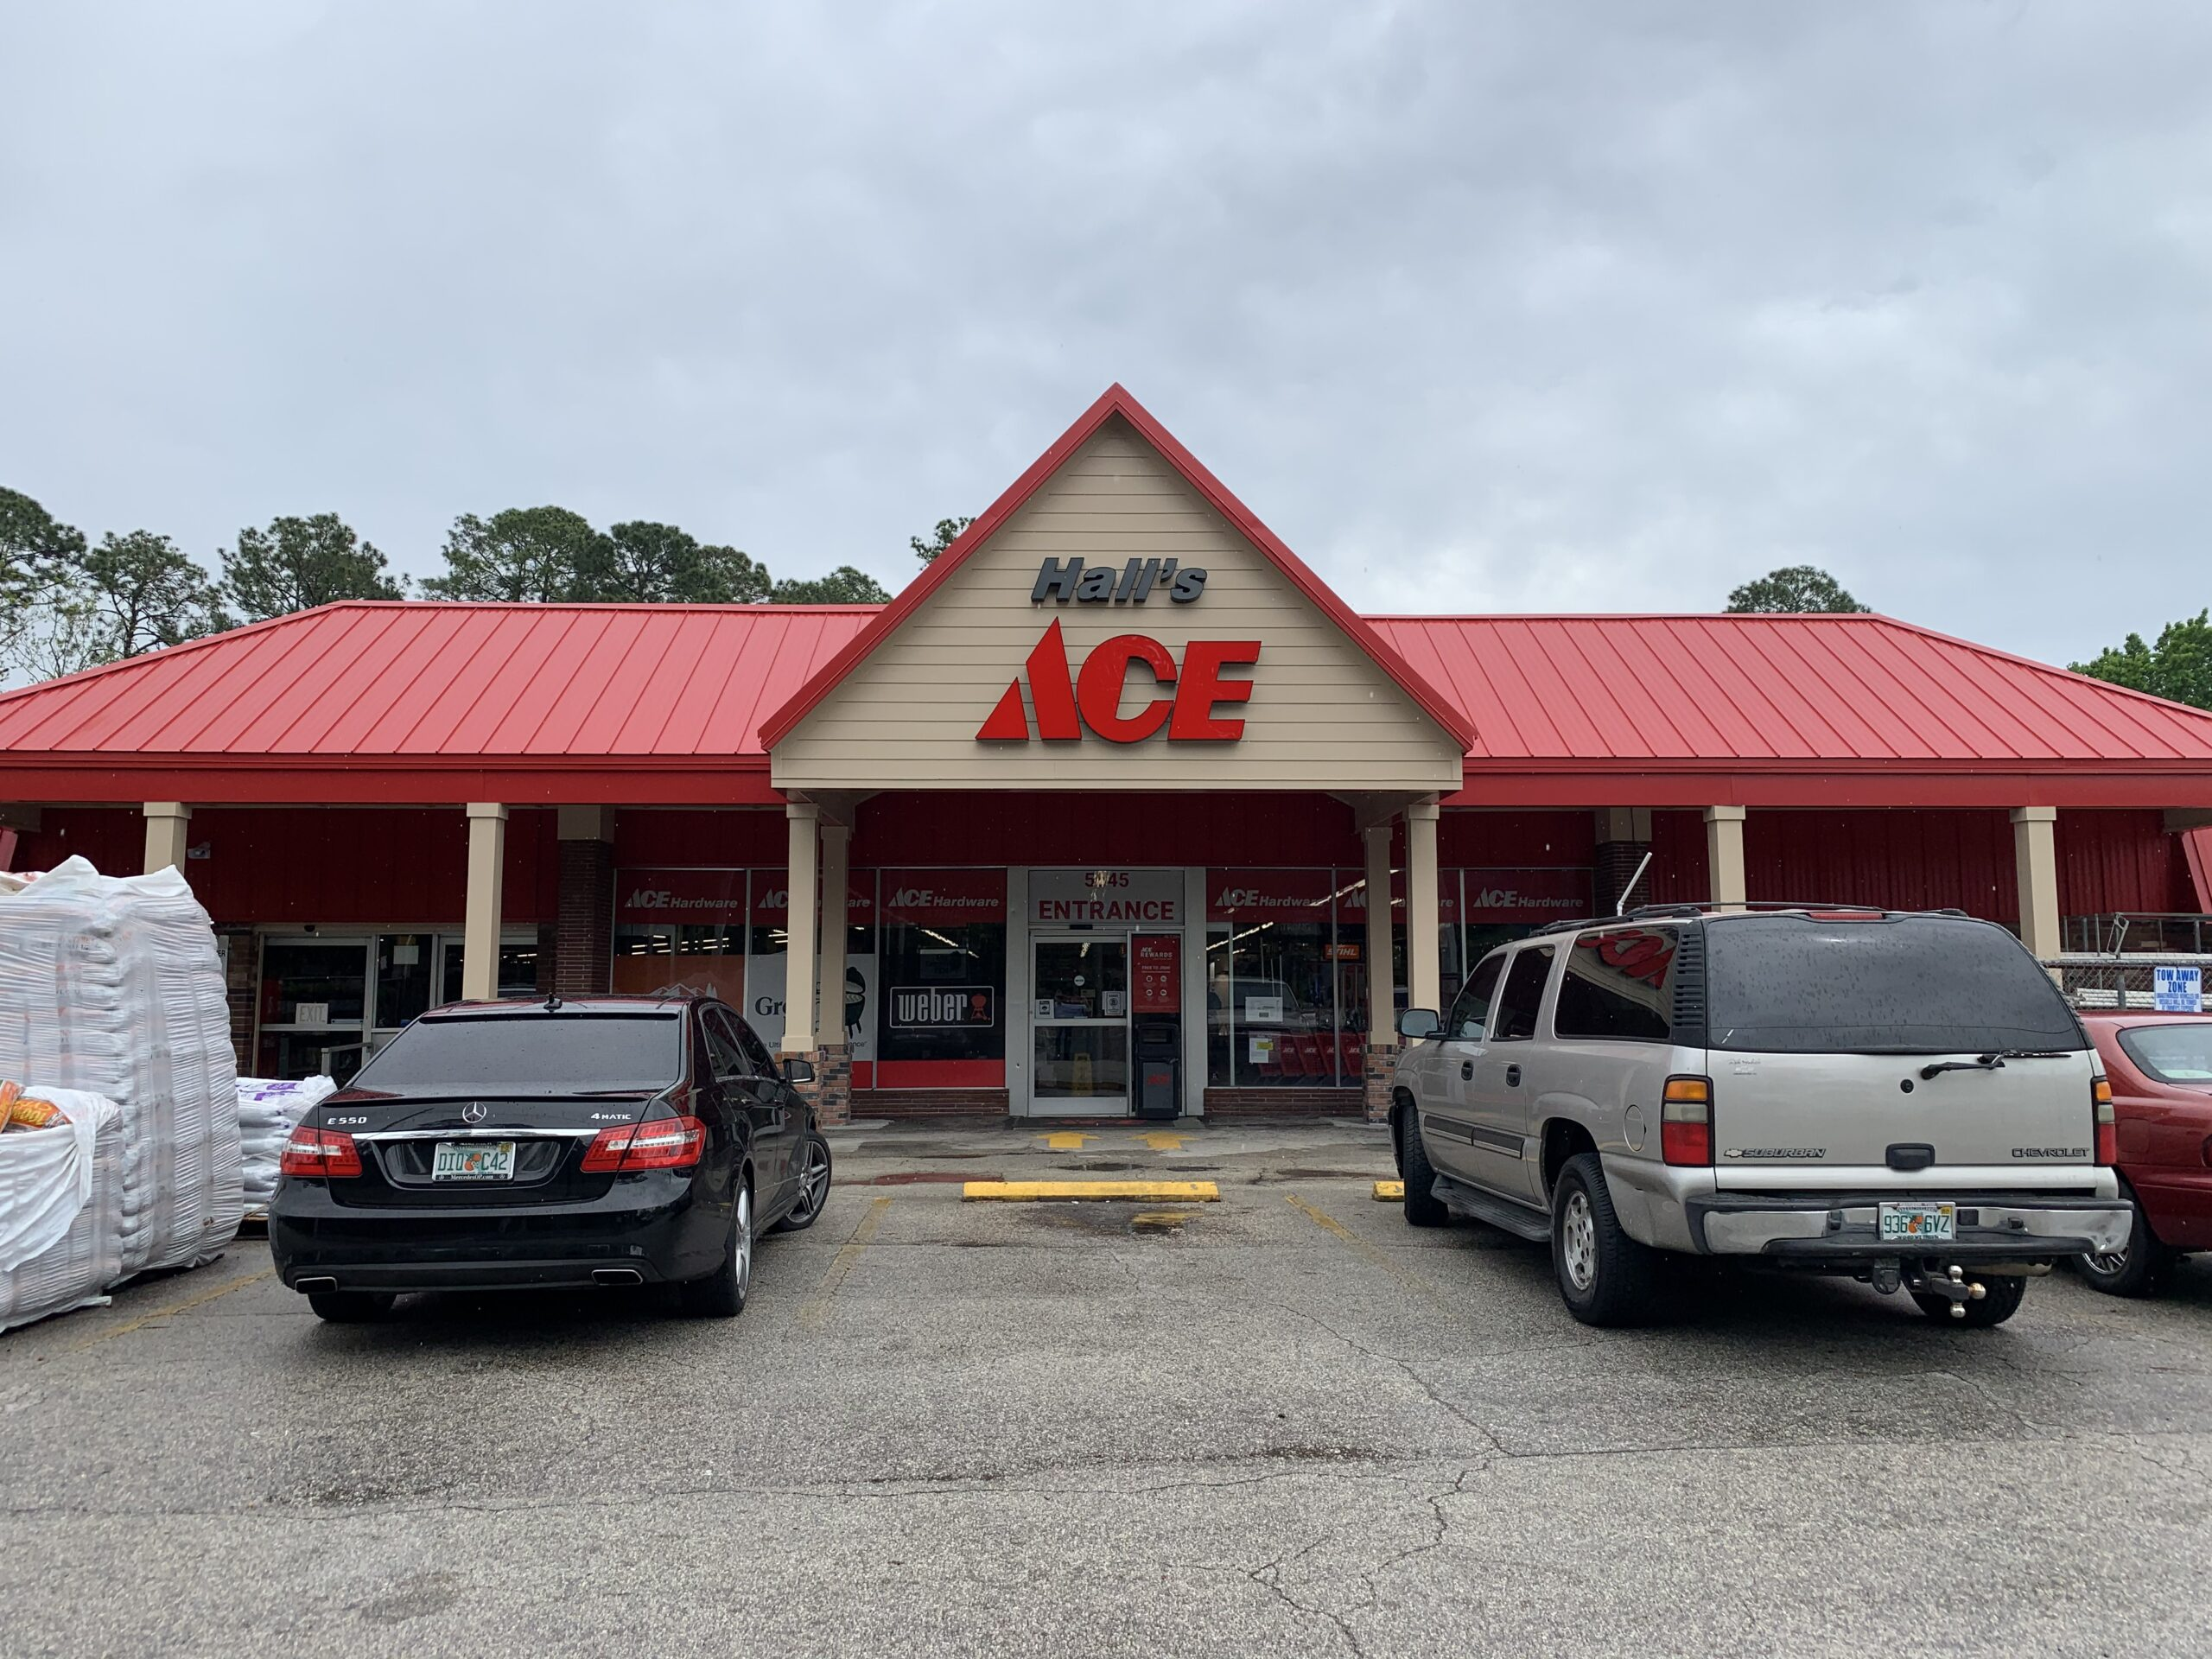 Hall's Ace Hardware Jacksonville - Front Illuminated Channel Letter Signs